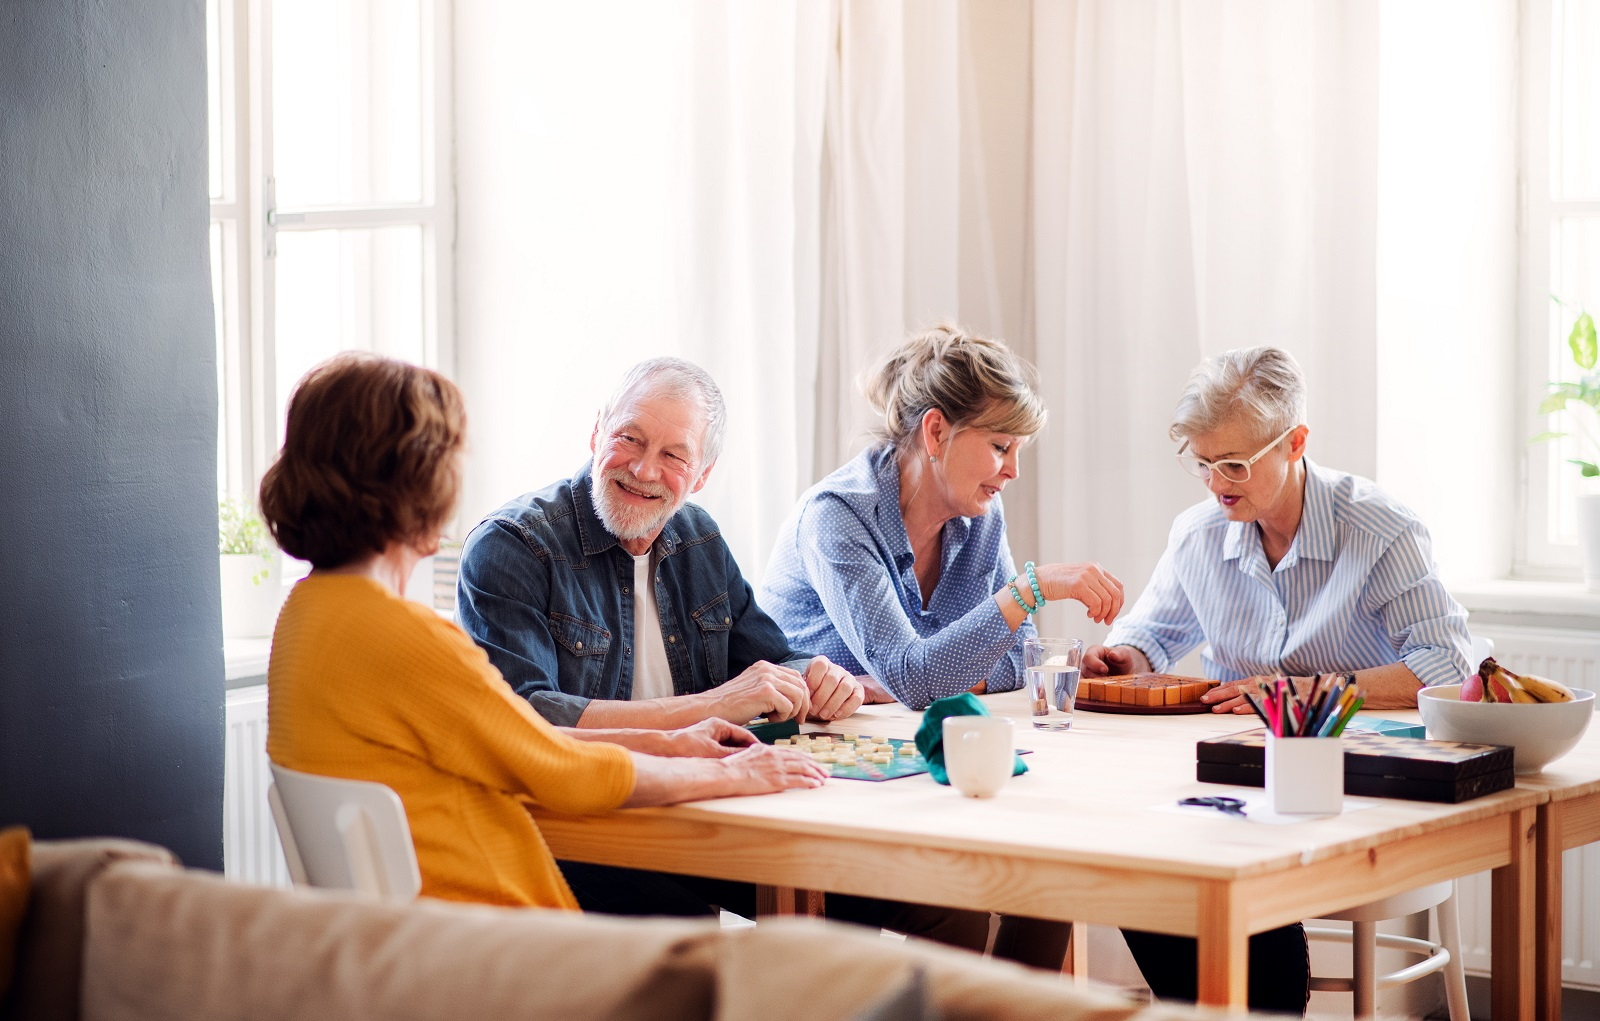 Quick Activities for Dementia Care